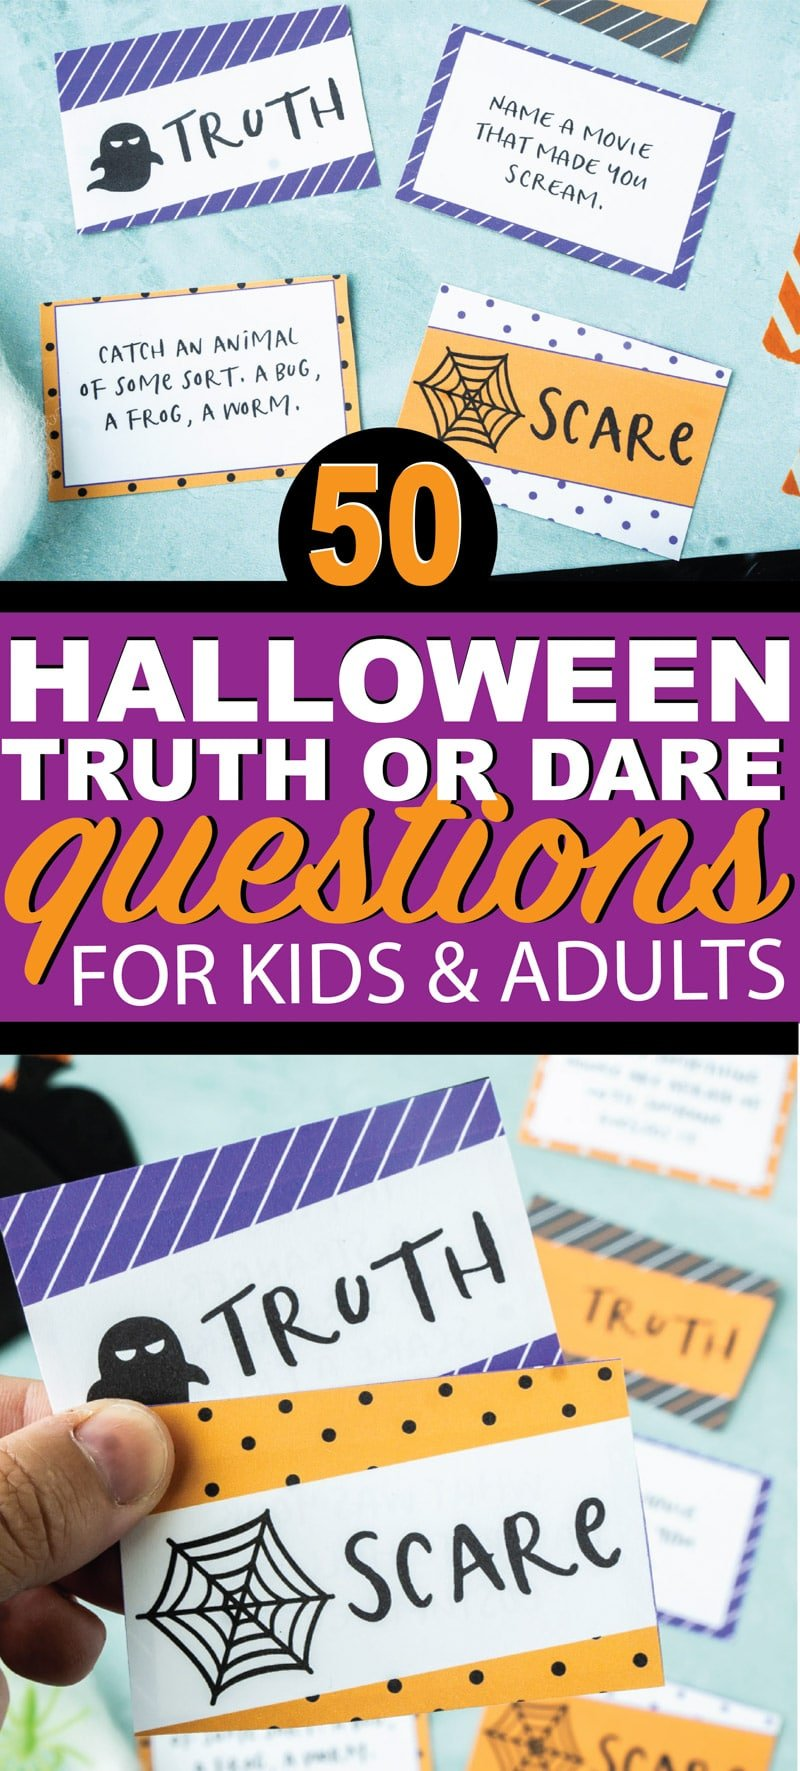 Fun Halloween inspired truth or dare questions! Perfect for teens, for kids, for girls, and for boys! Everyone will love this Halloween truth or scare version of the classic truth or dare game! And bonus - all of the truth or dare questions are clean. Perfect for some Halloween family fun!